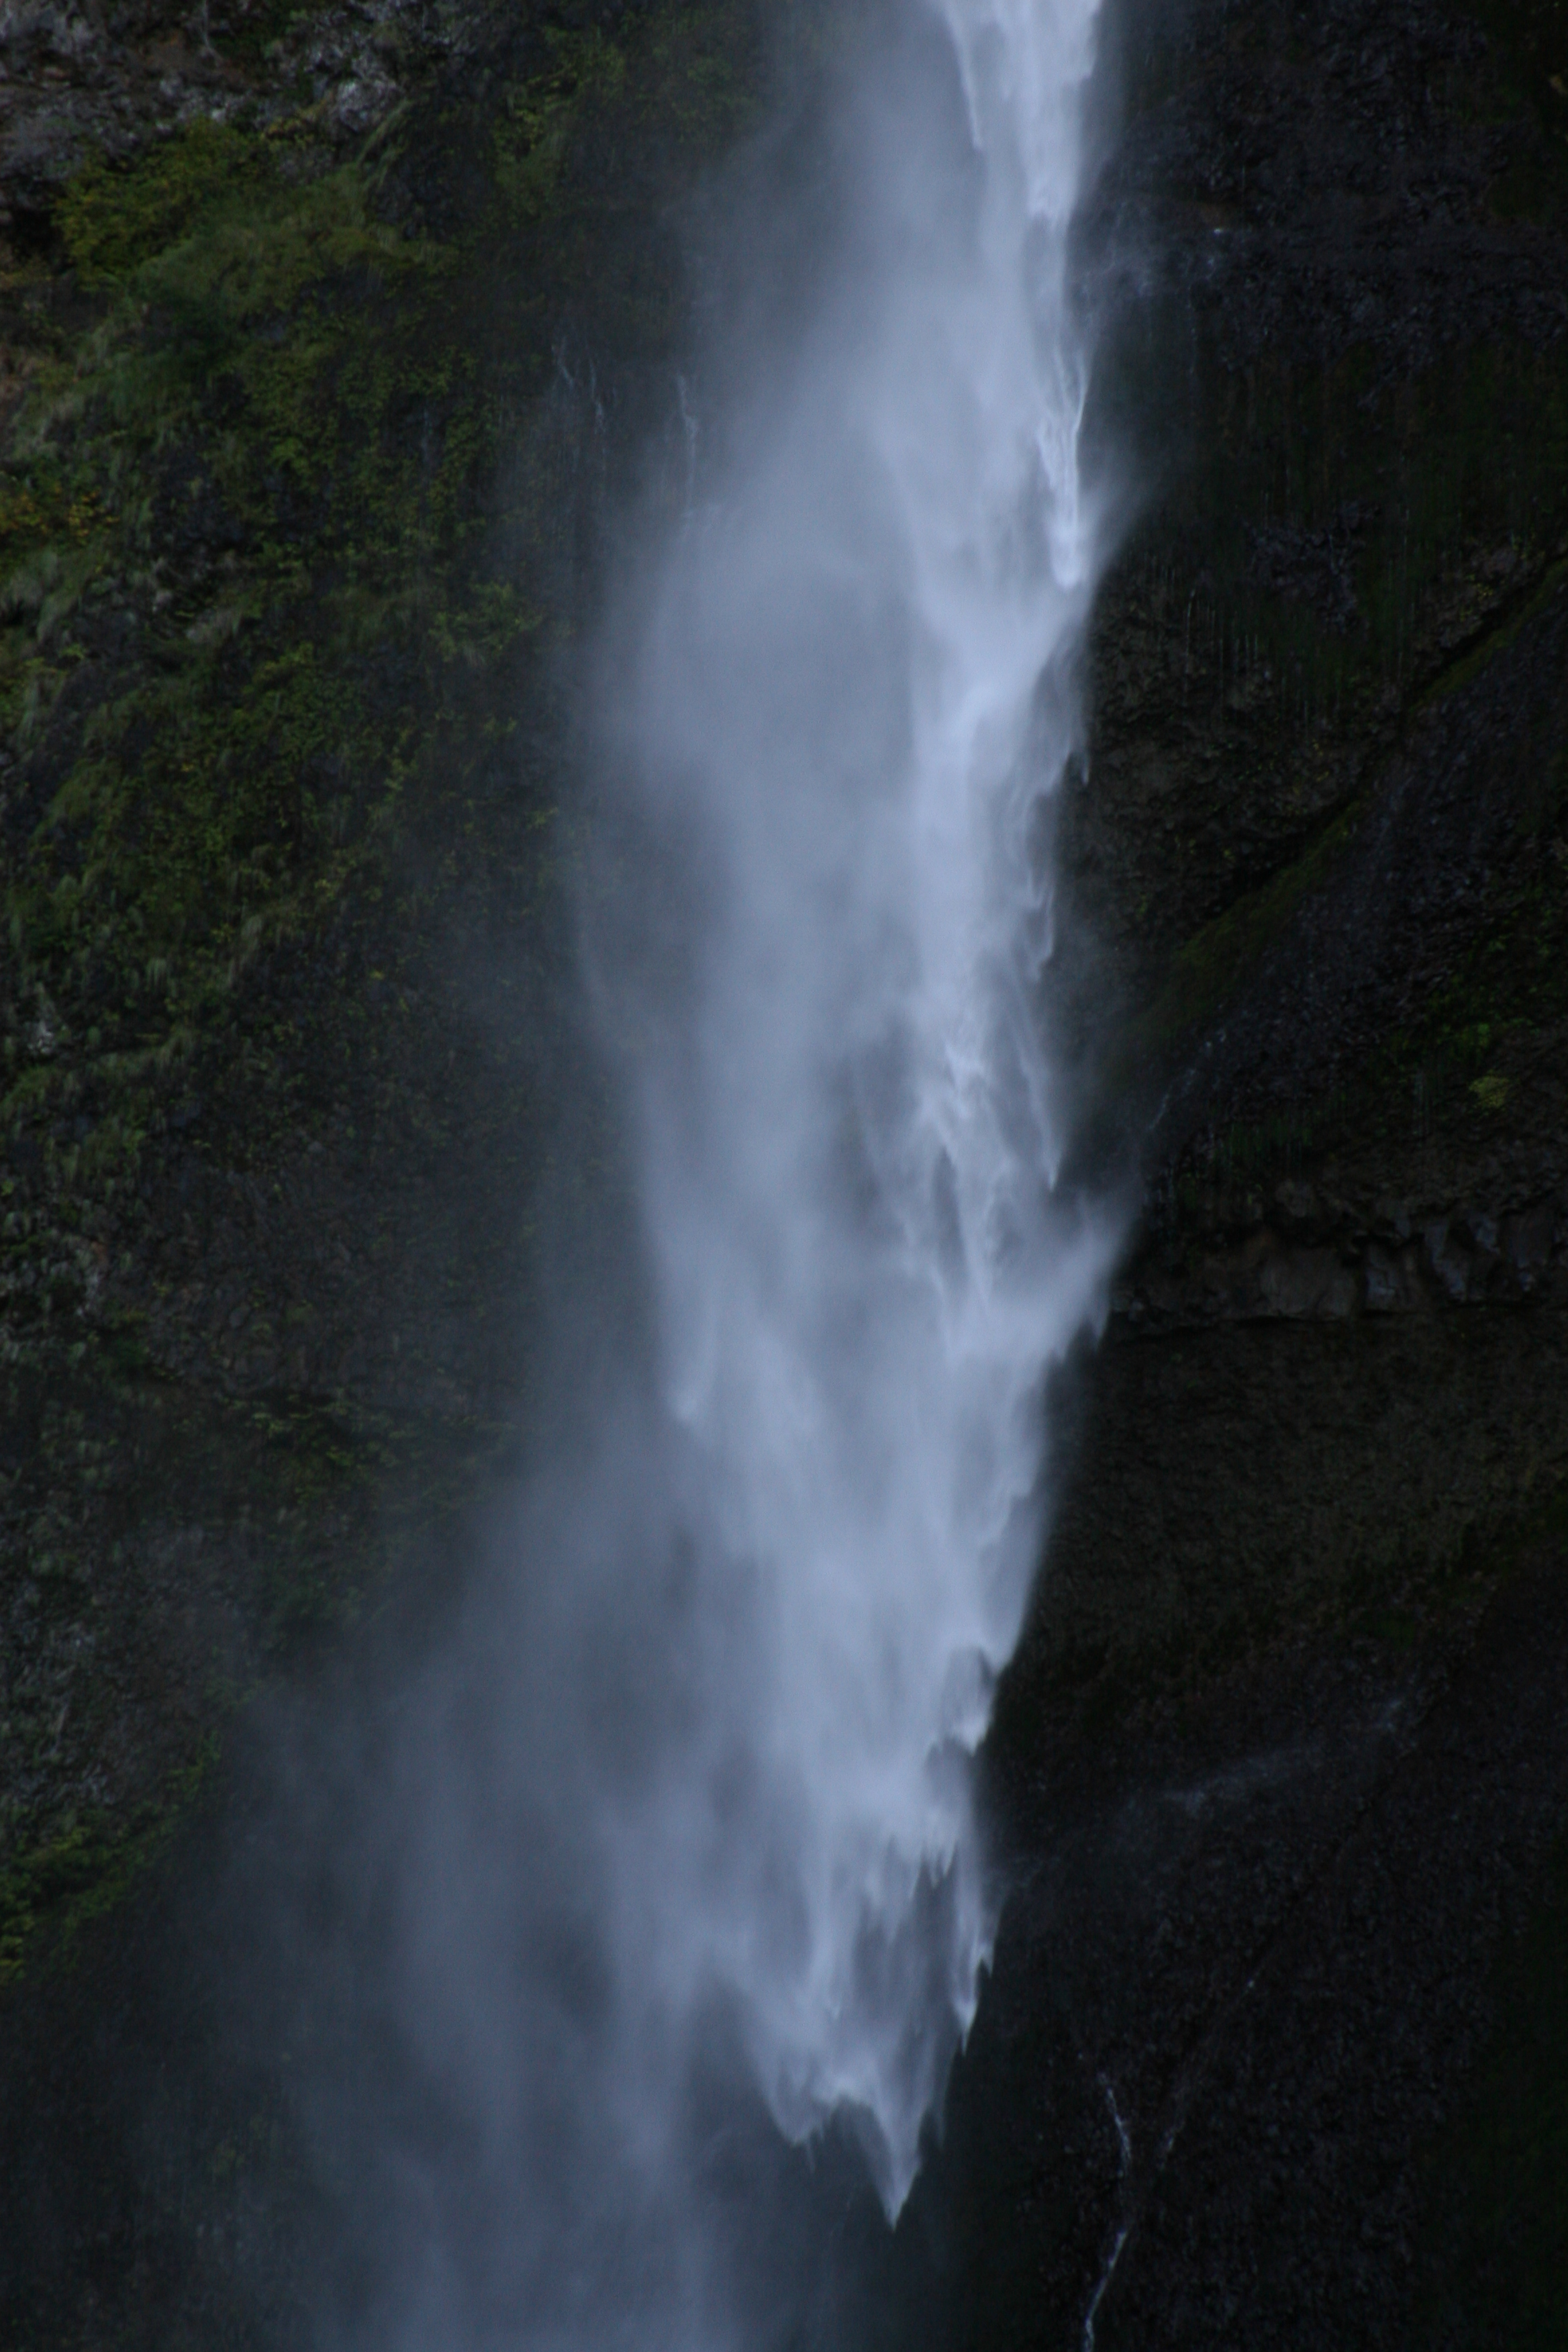 Falling water at Multnomah Falls in Oregon